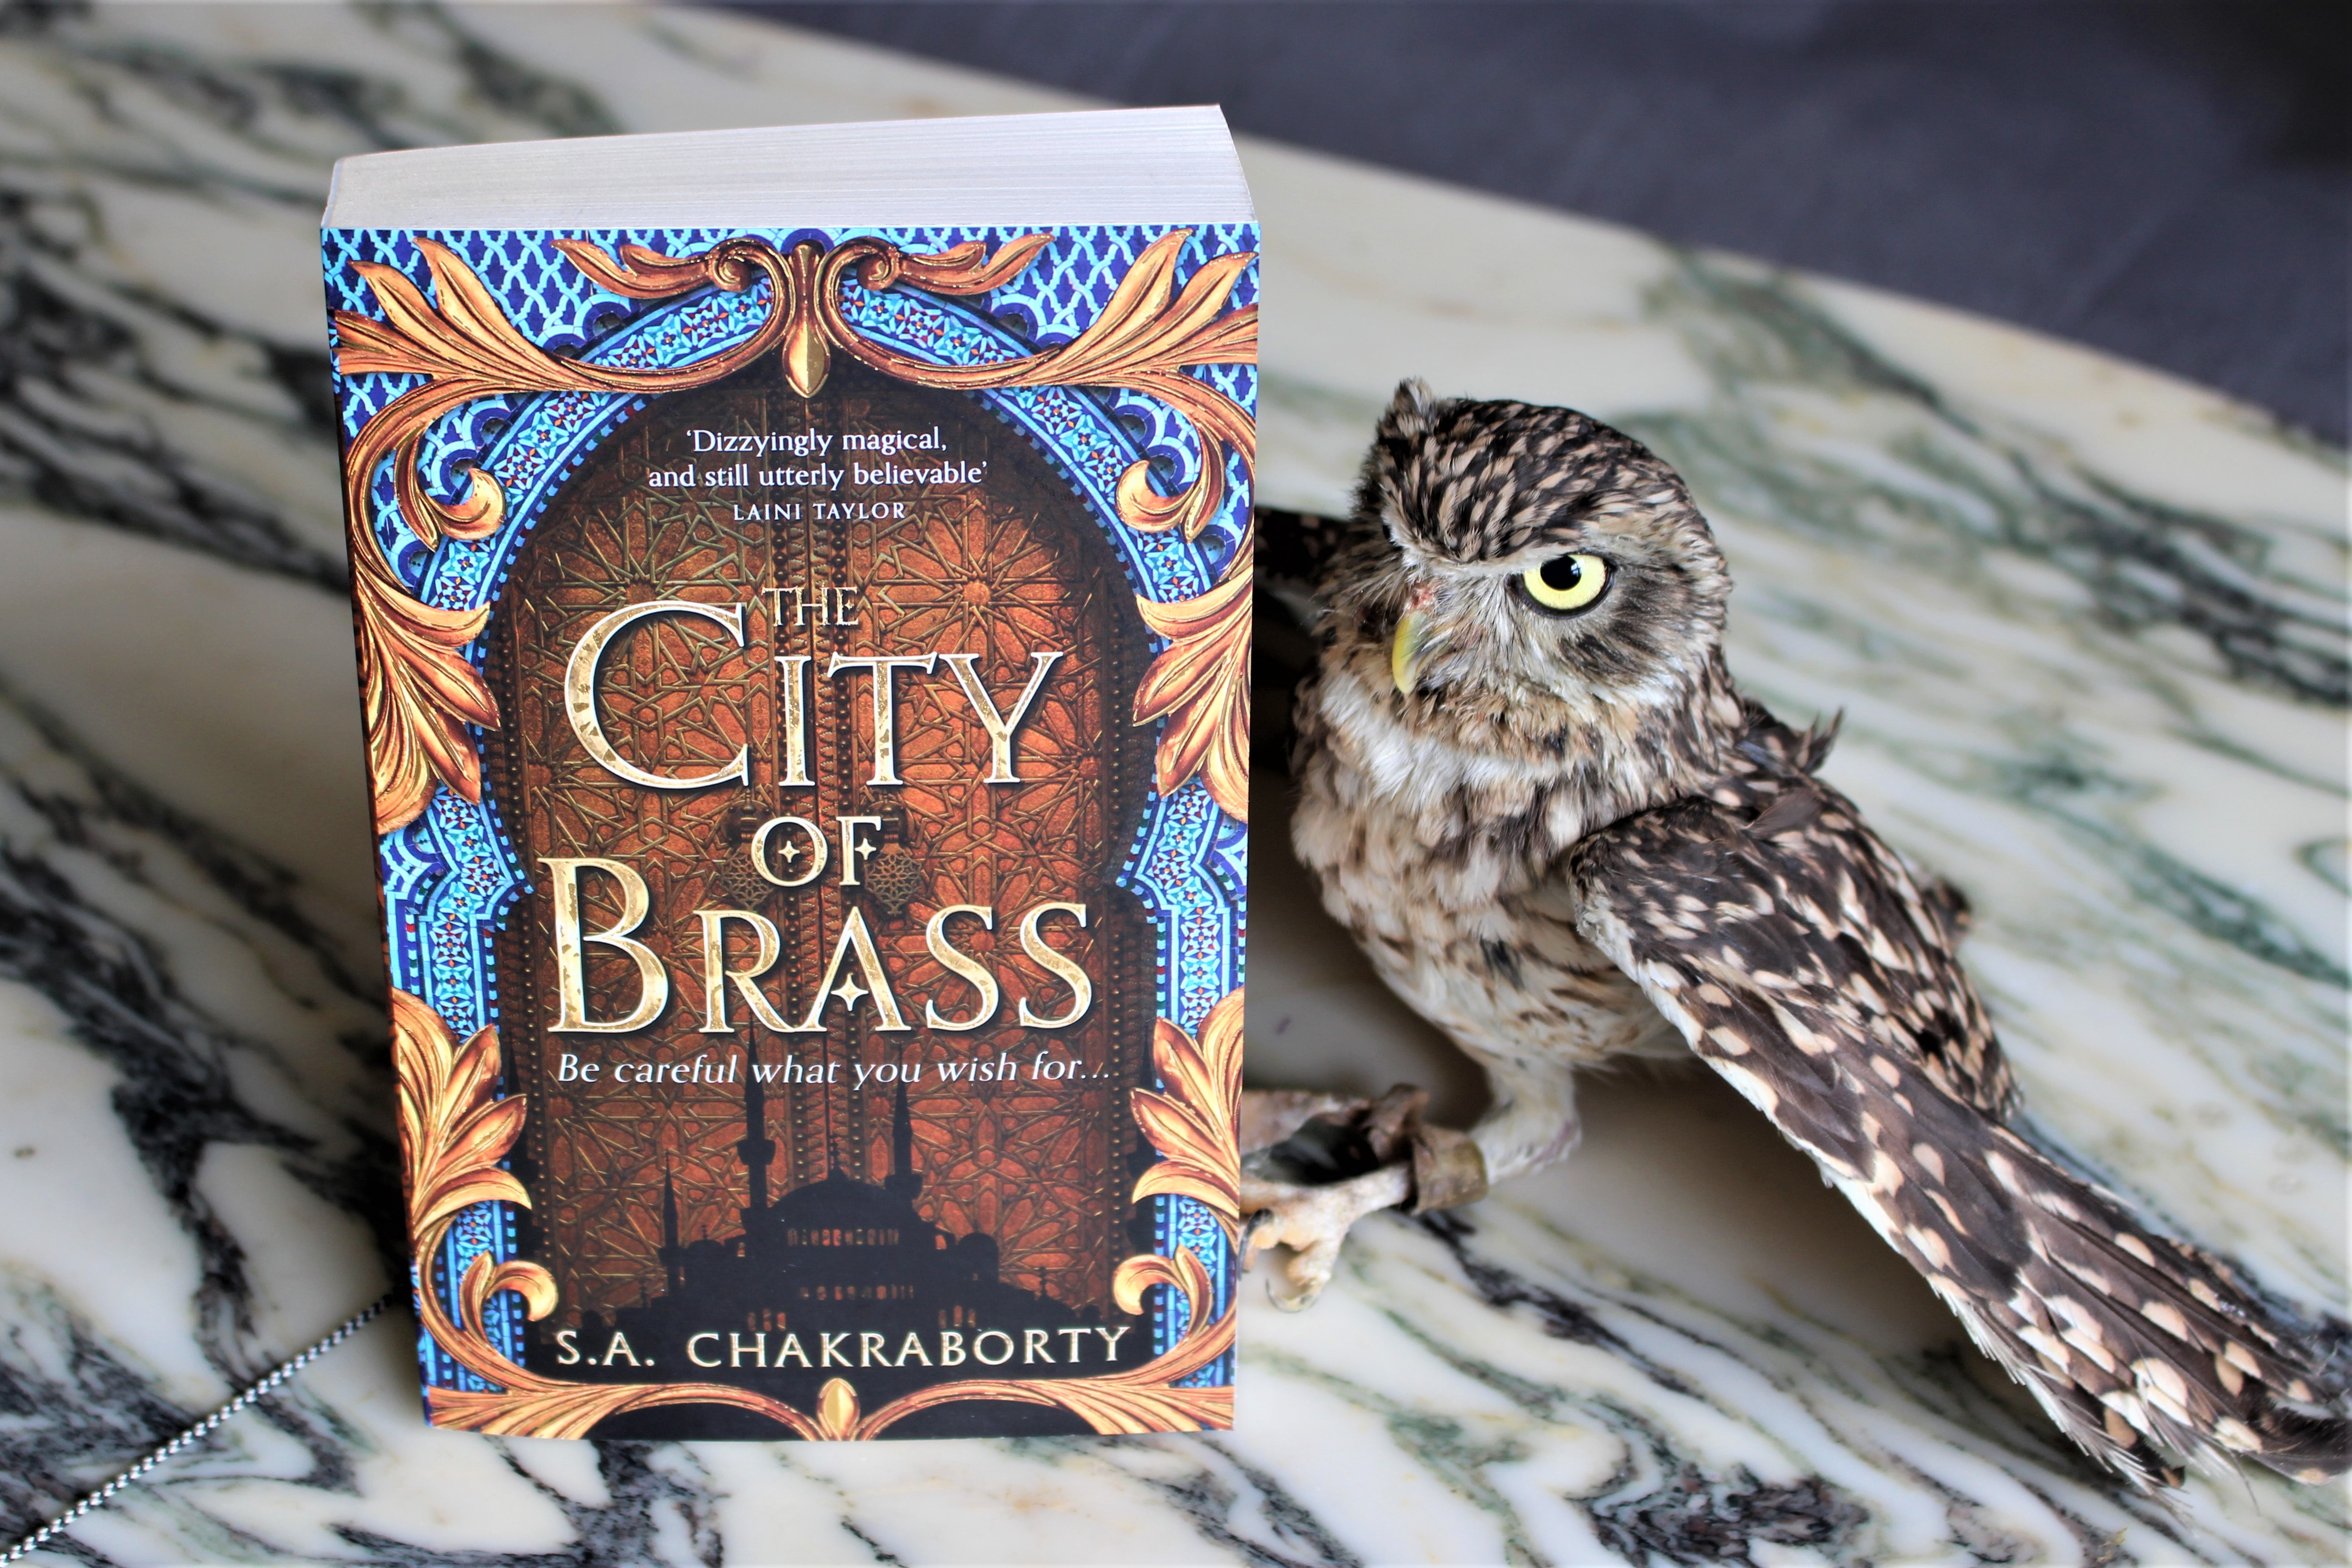 City of Brass by S. A. Chakraborty